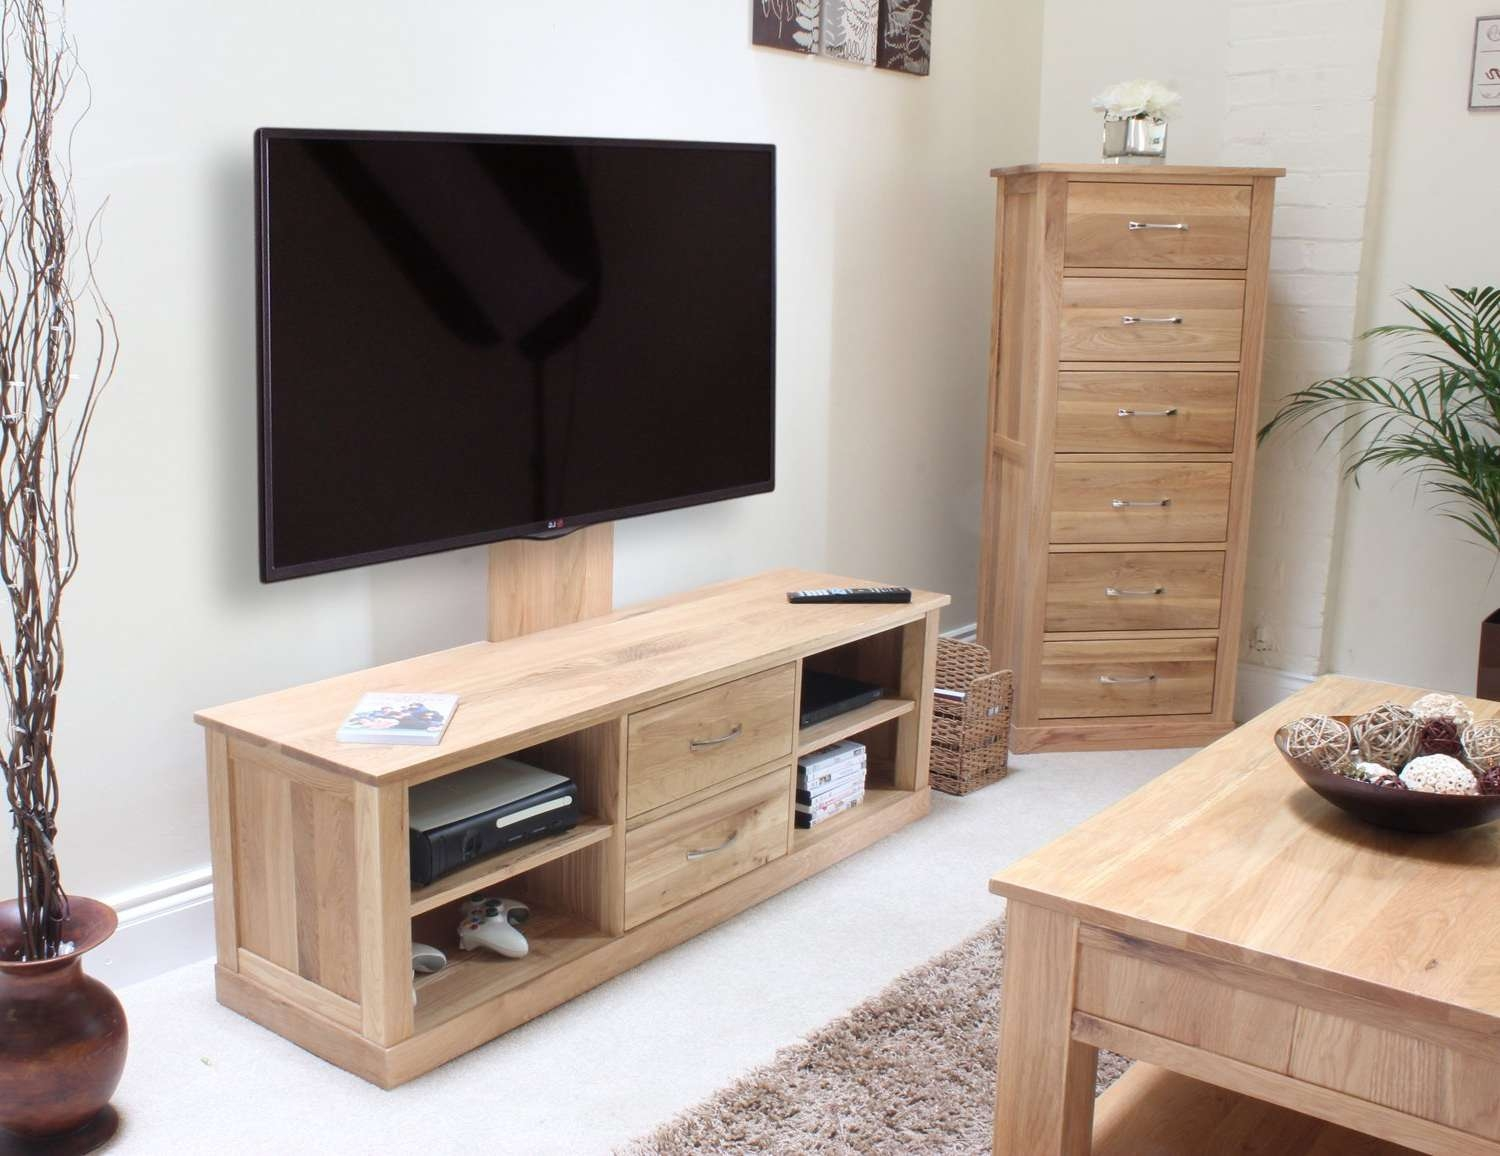 Mobel Oak Mounted Widescreen Television Cabinet – Azura Home Style Pertaining To Widescreen Tv Cabinets (View 12 of 20)